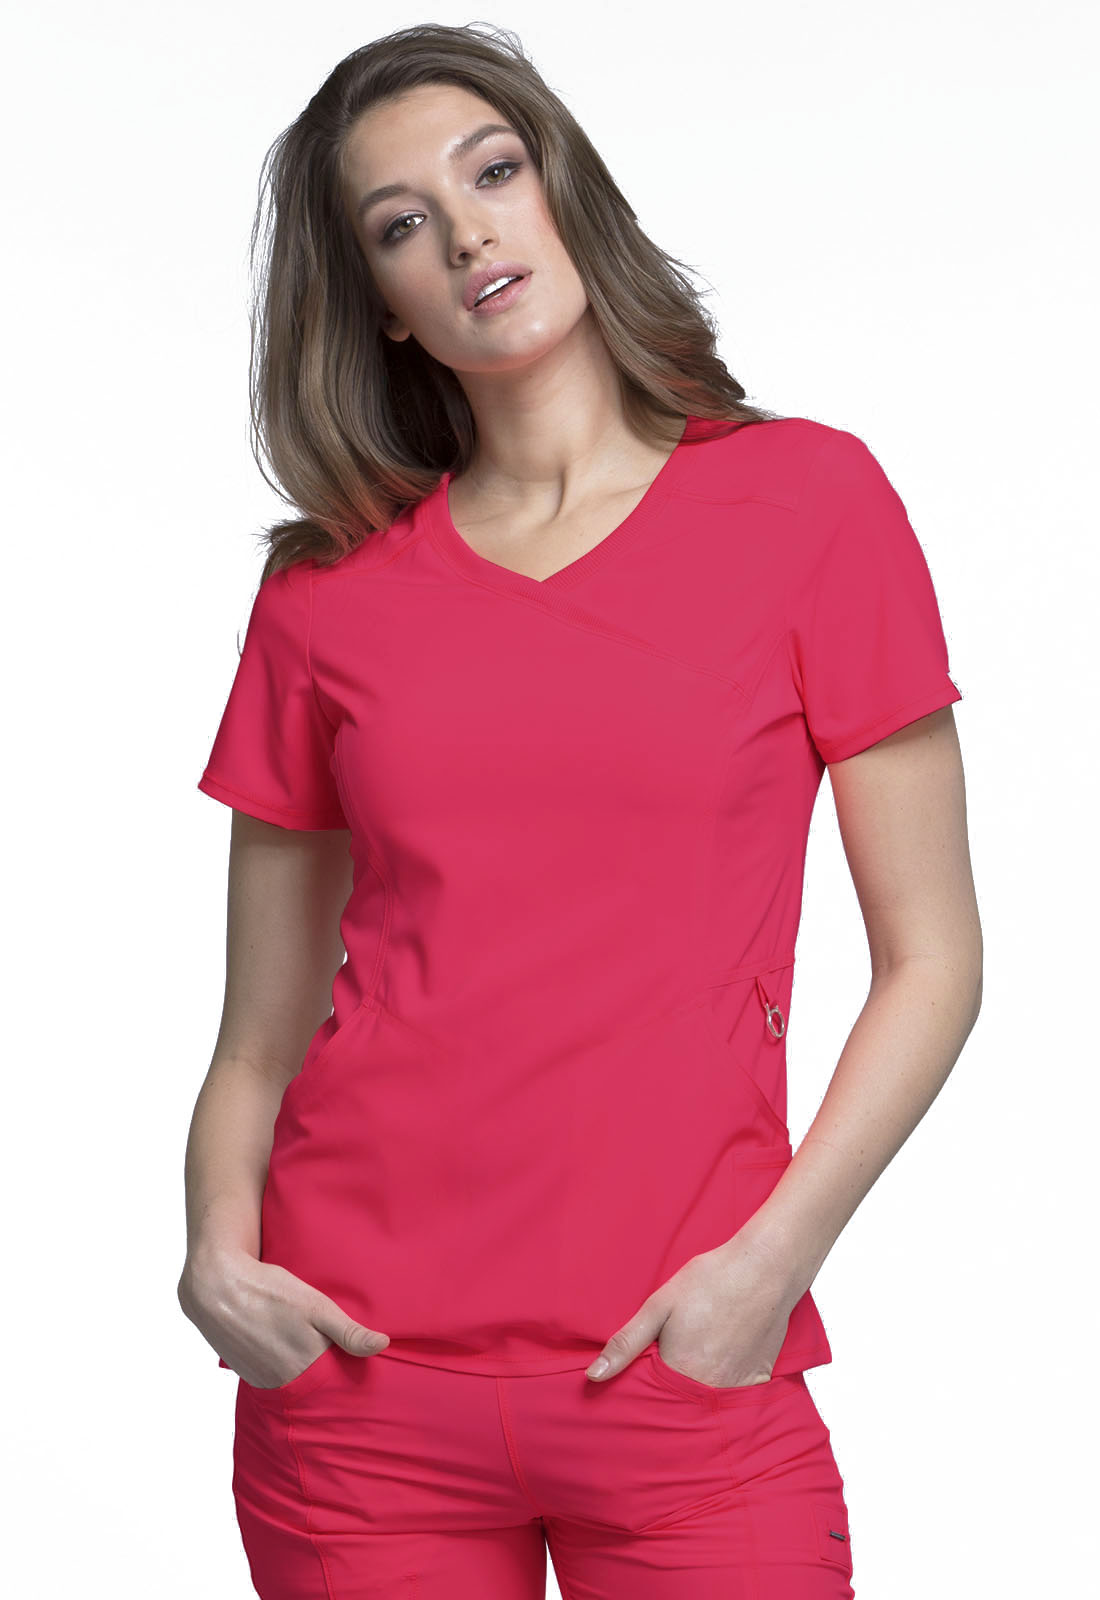 e4afe4a5db8 Infinity Mock Wrap Top in Punch 2625A-PUNC from Cherokee Scrubs at ...